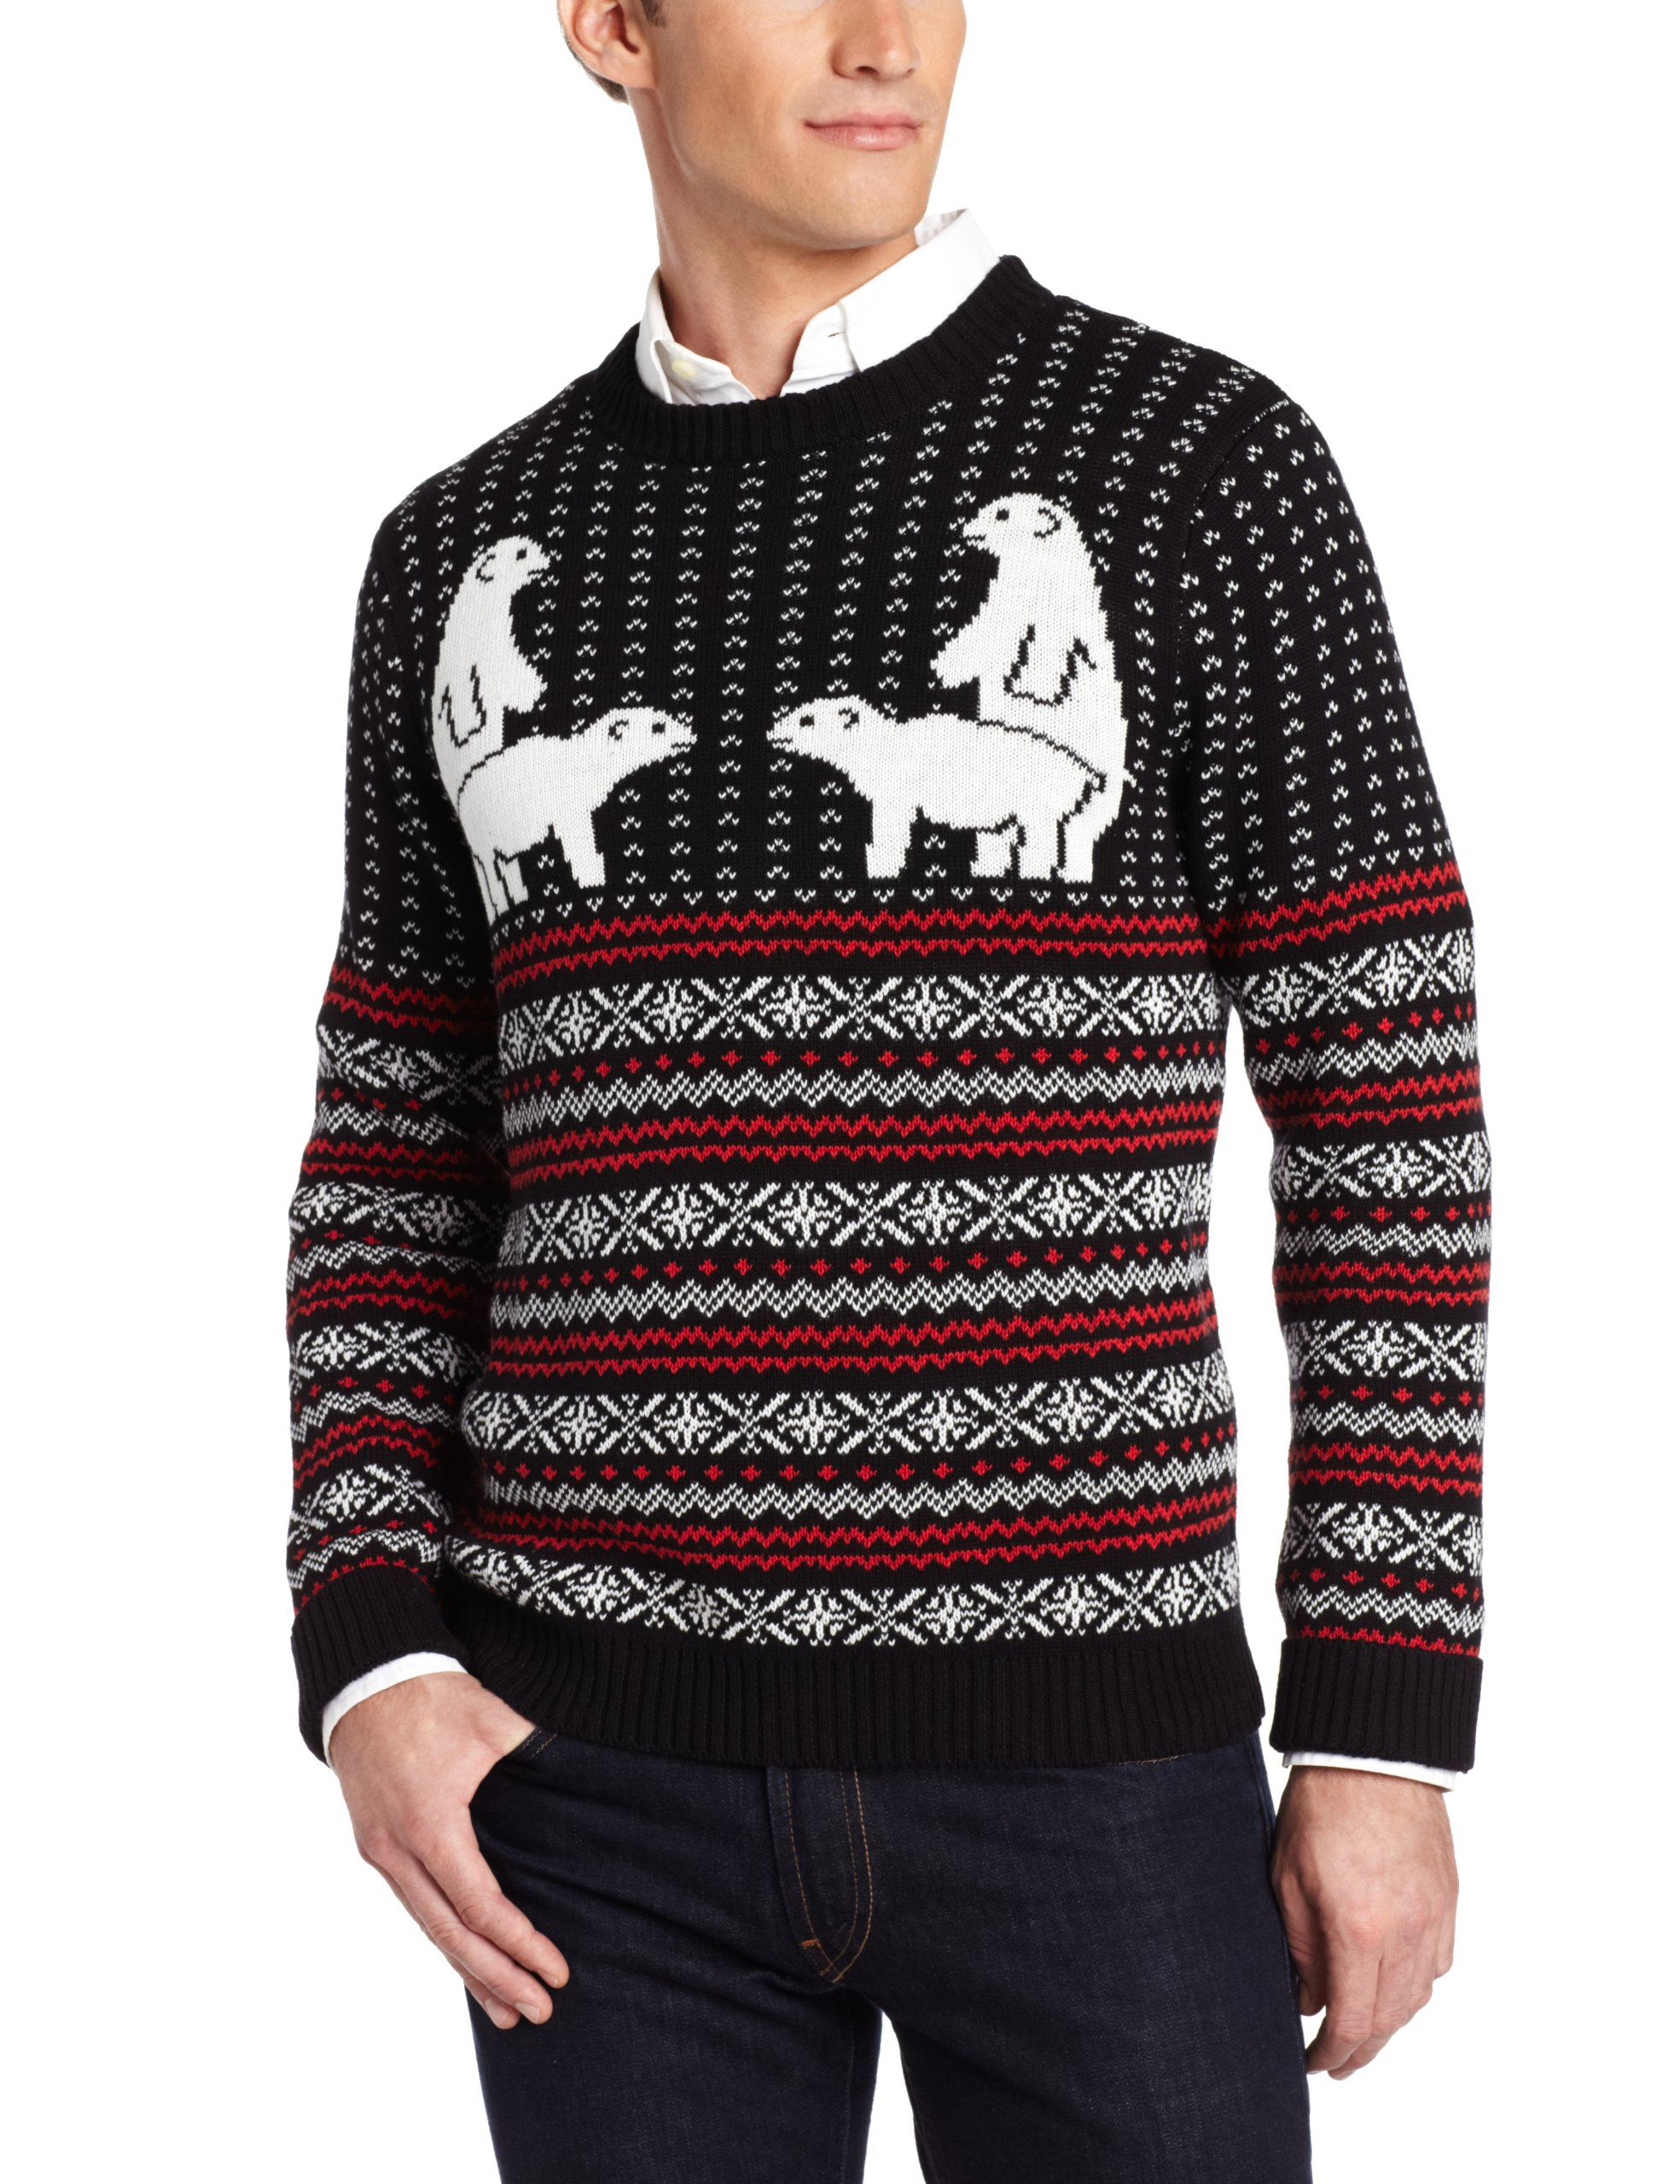 Alex Stevens Men's Polar Bear Pair Ugly Christmas Sweater at ...